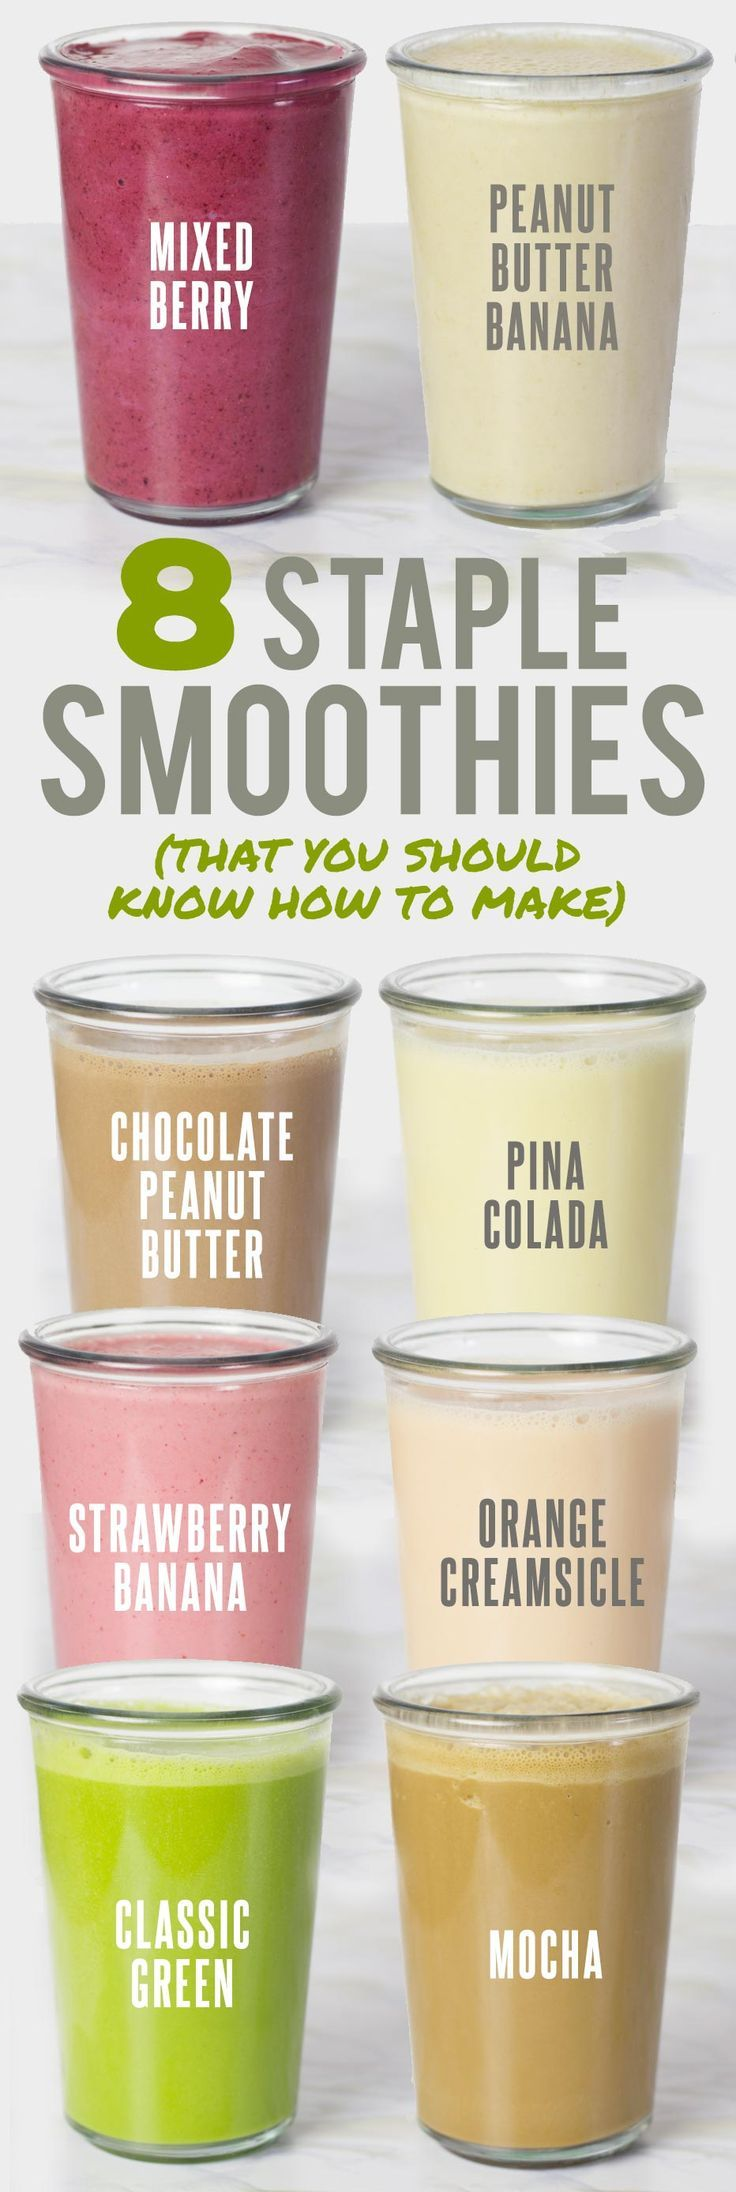 8 Healthy Staple Smoothie Recipes That You Should Know How to Make!